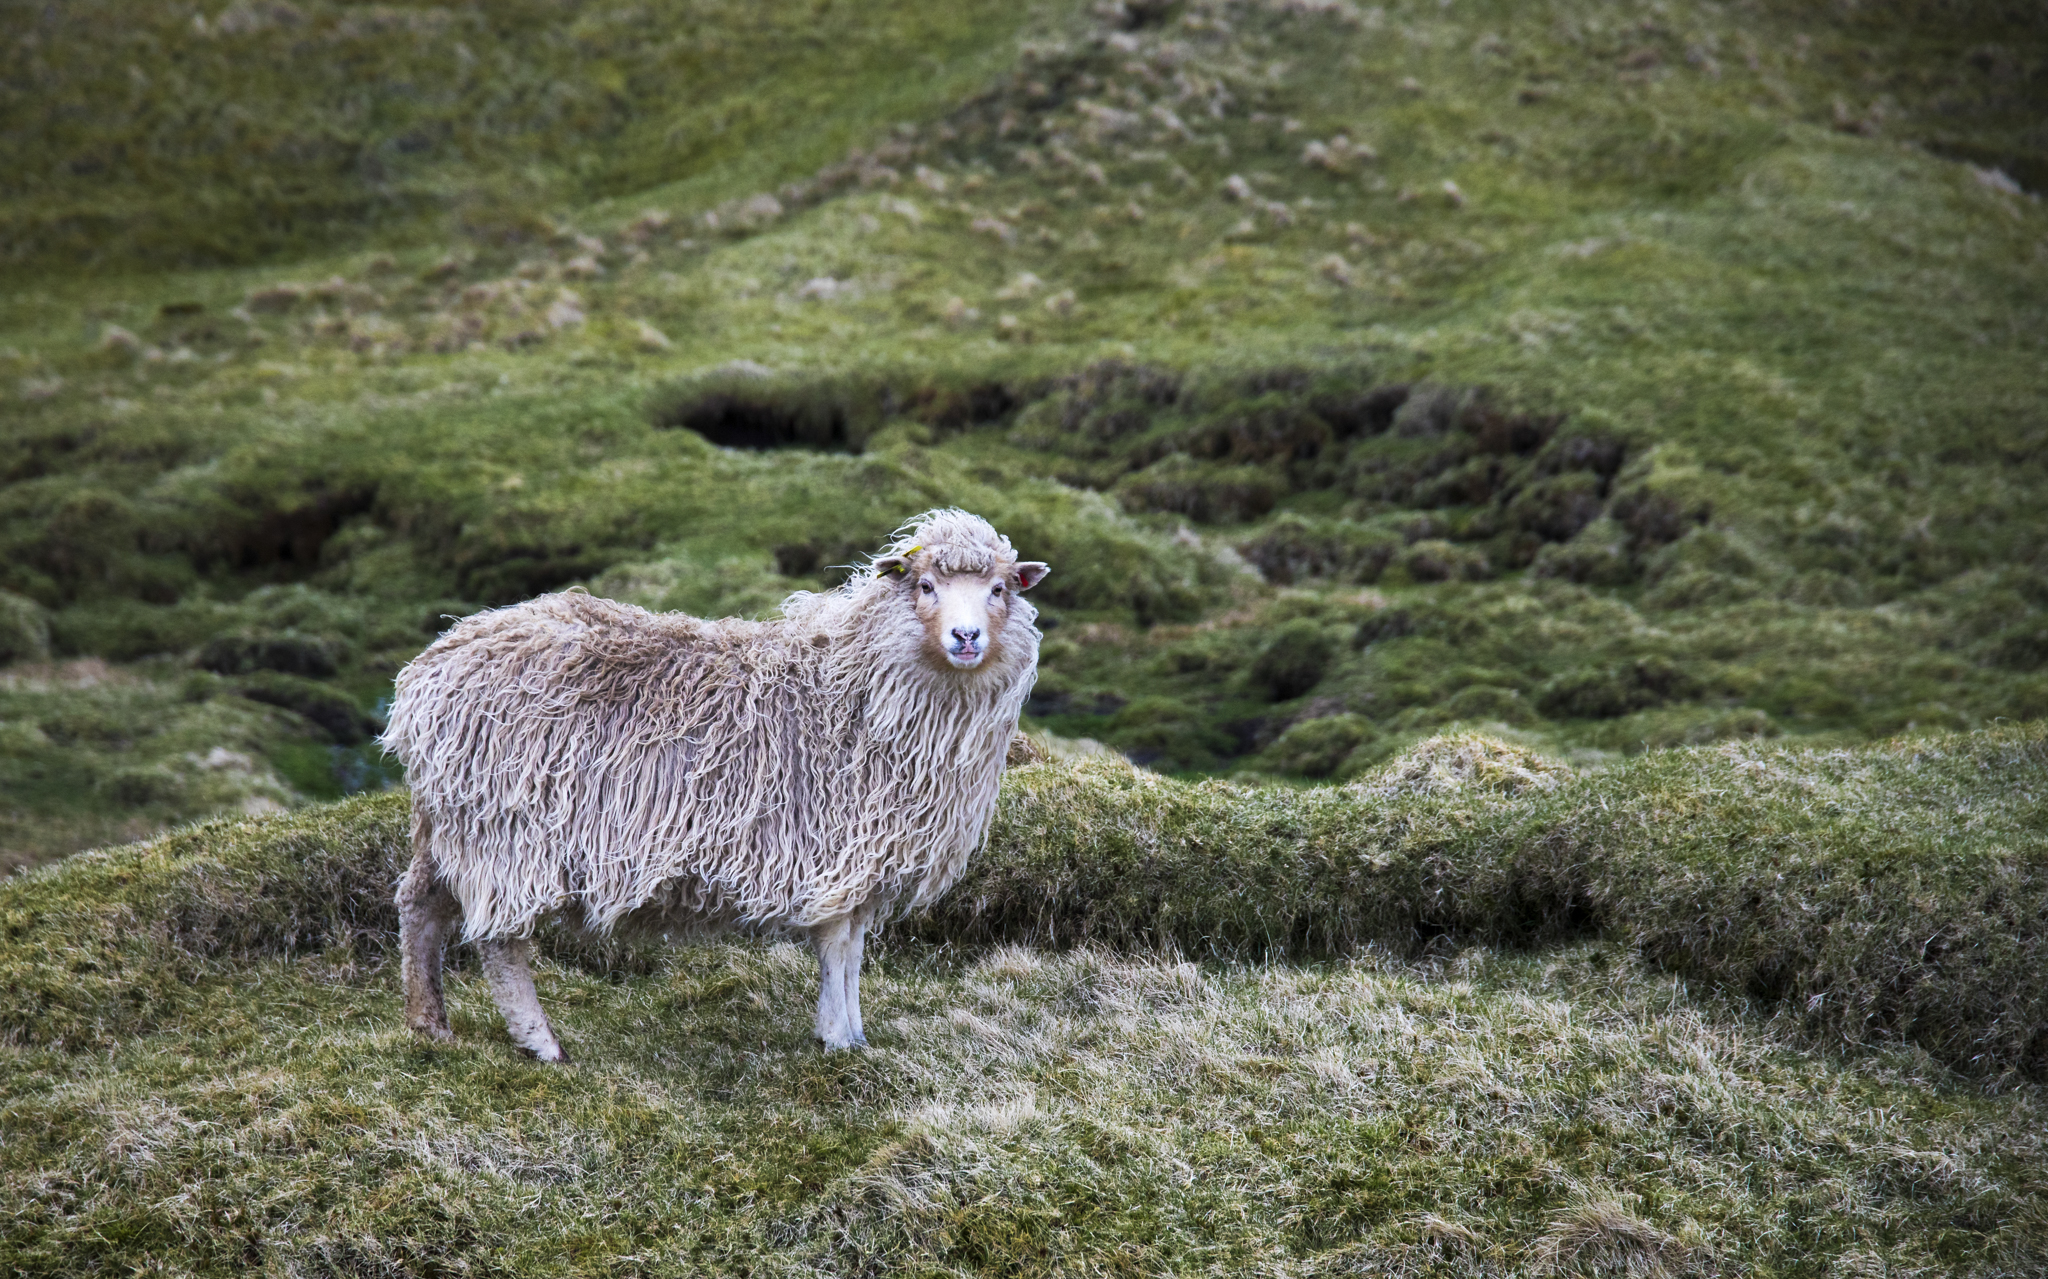 A Faroe Island sheep - because it's as Irish-looking as I have without actually having started my Irish photography yet.